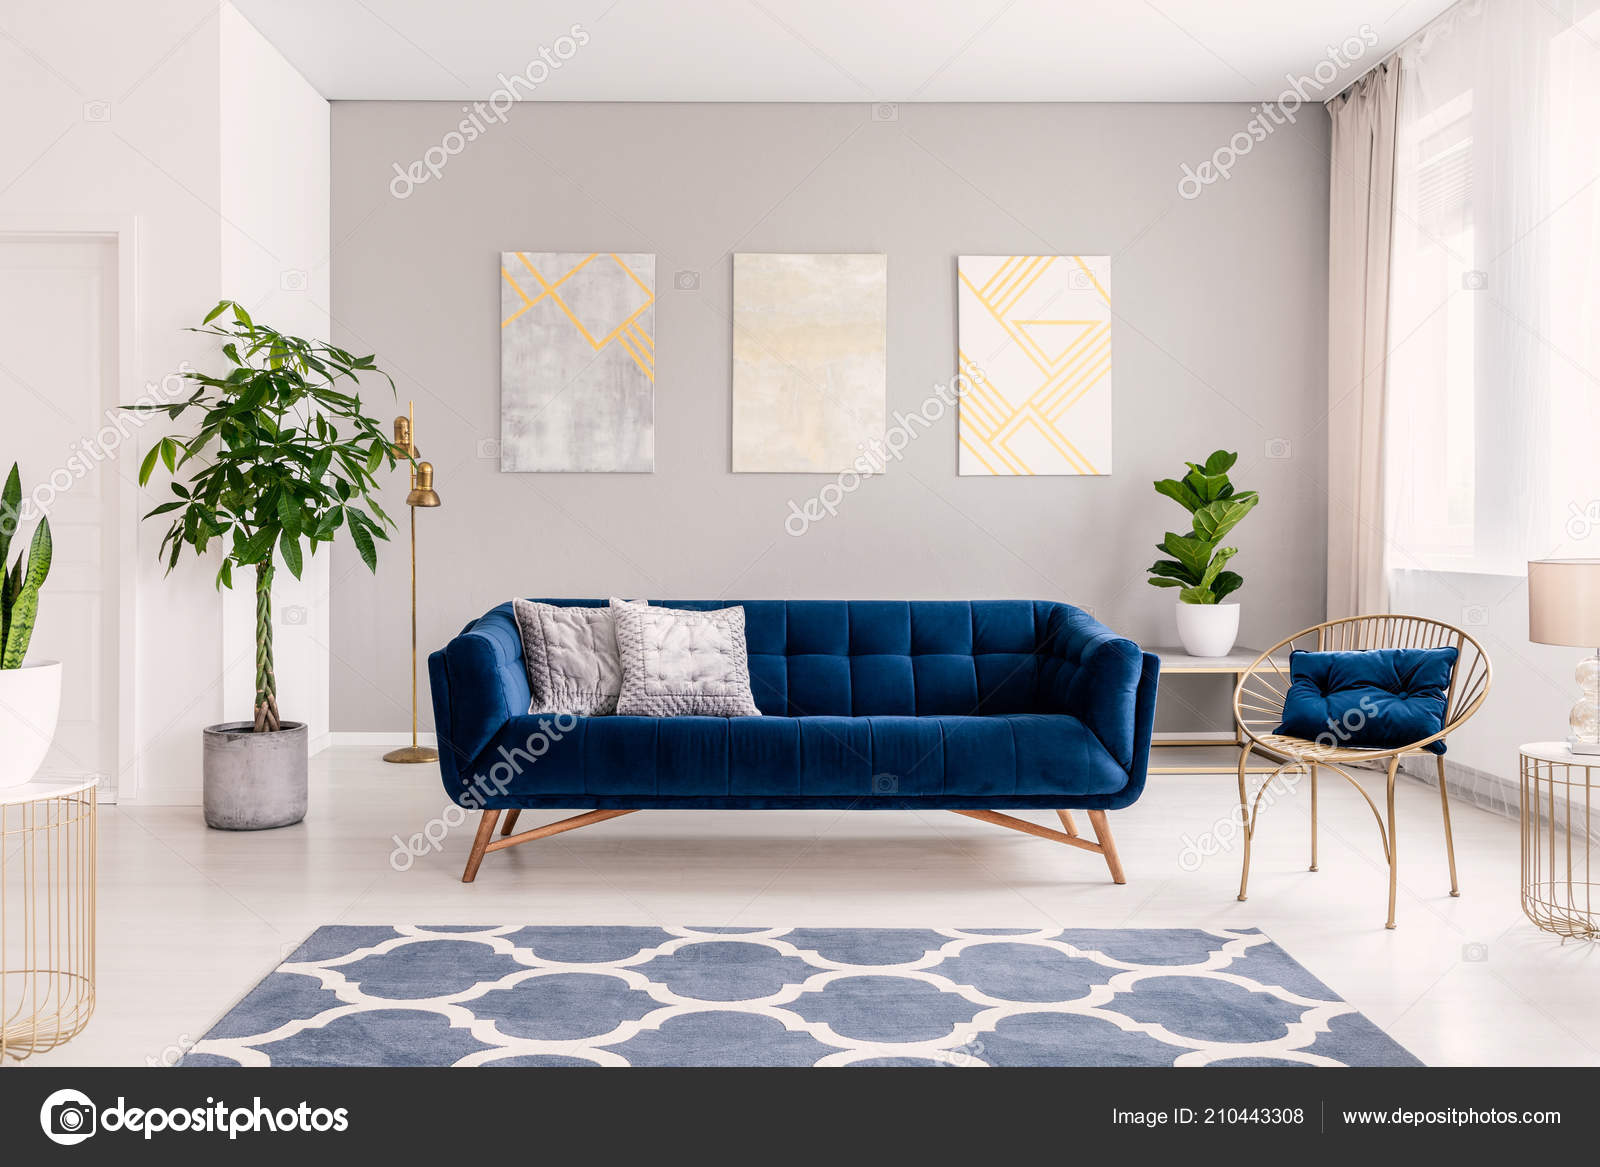 Royal blue couch two pillows standing real photo bright living stock photo